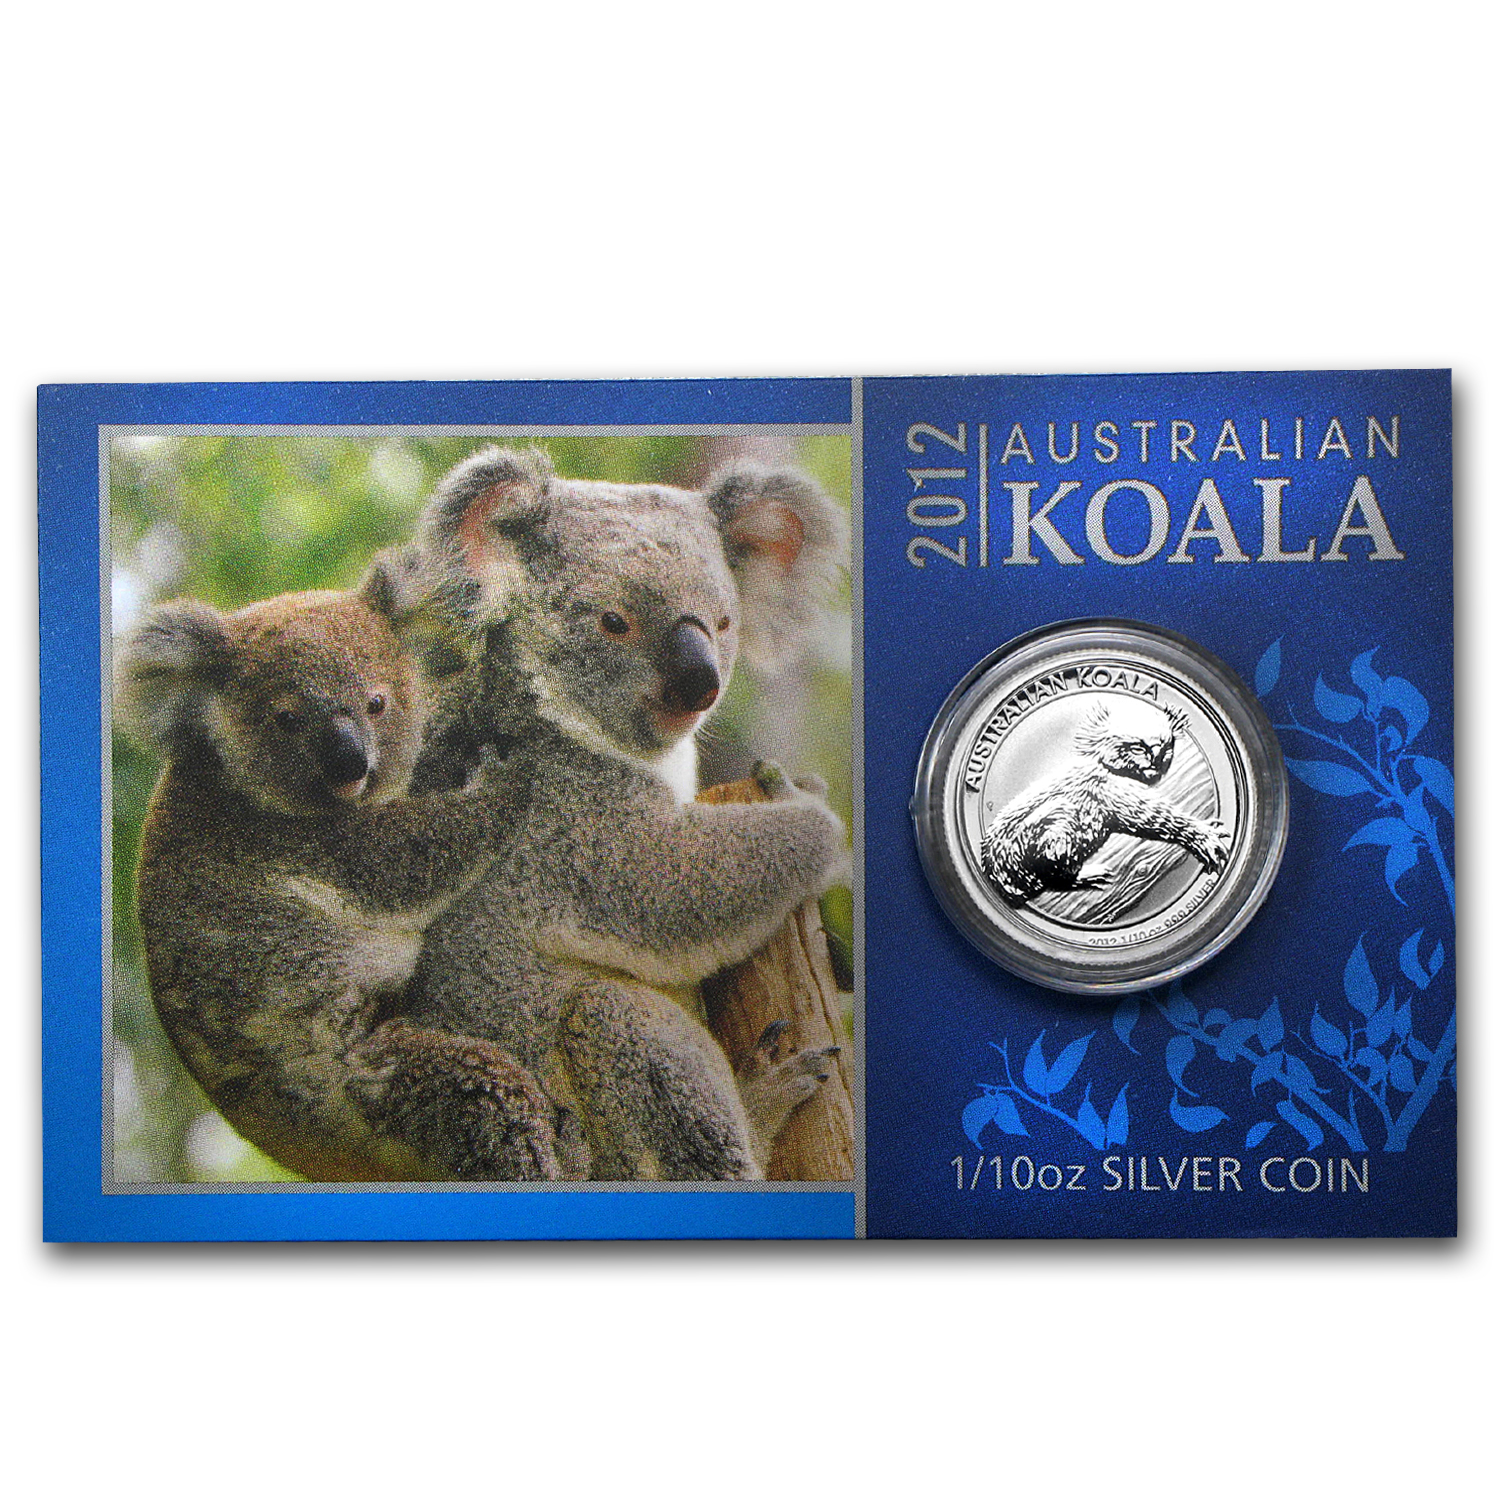 2012 1/10 oz Silver Australian Koala (In display card)